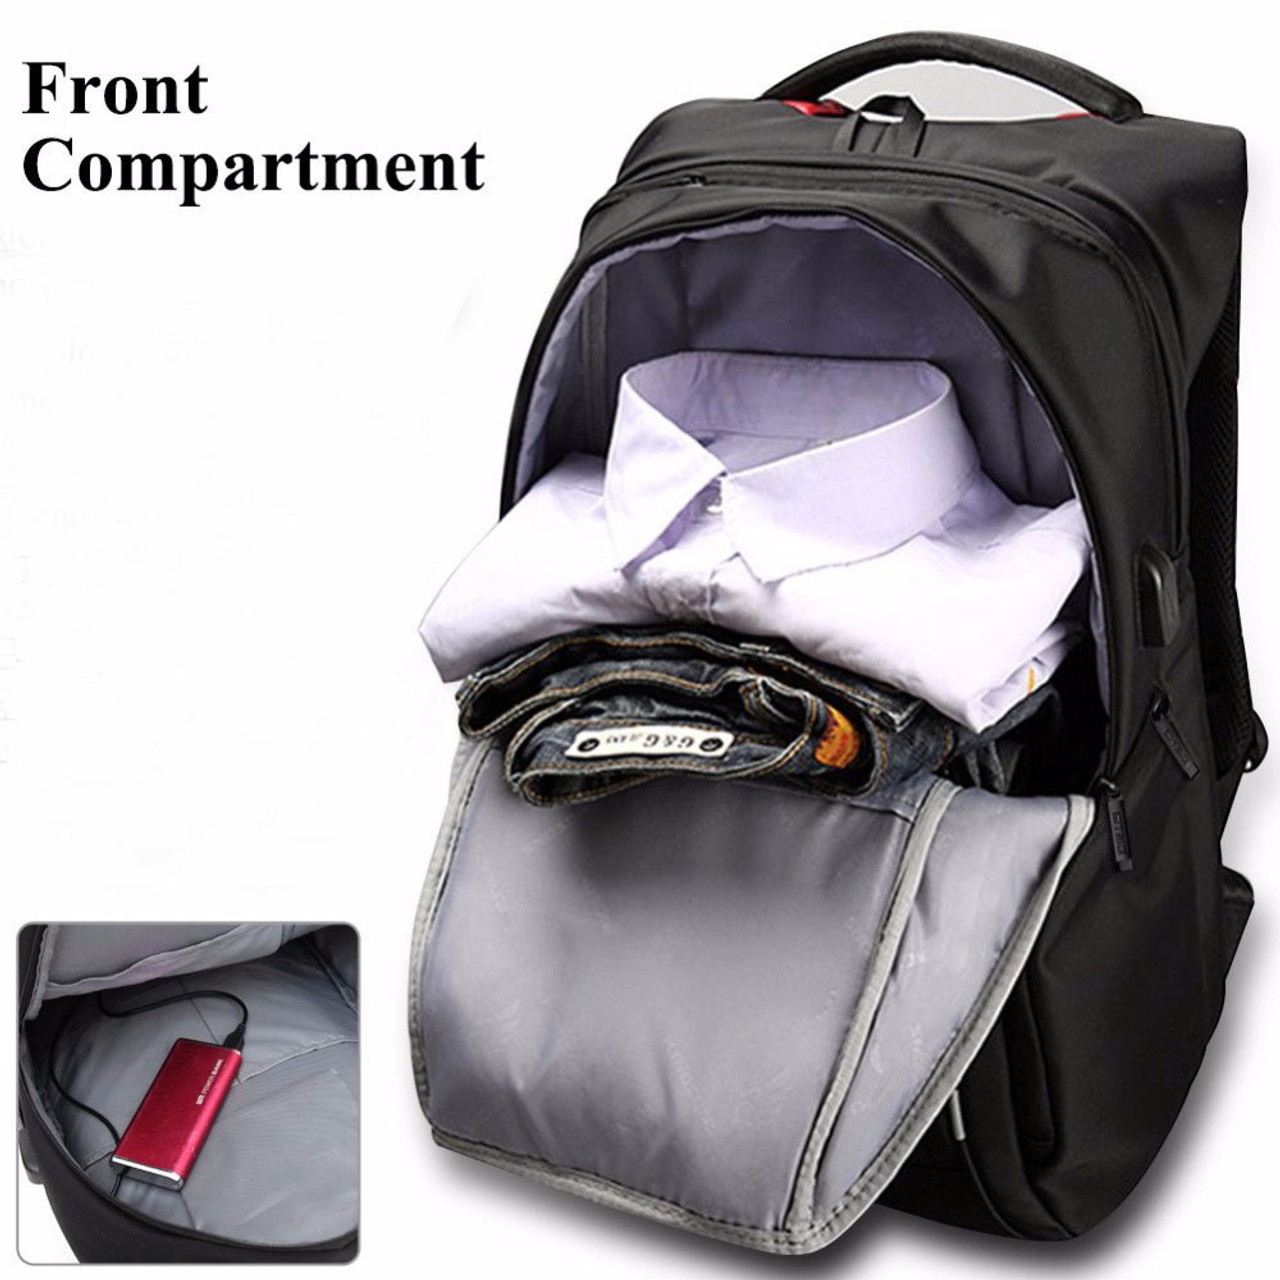 Notebook Laptop Backpack+USB Charging Port For Men Women Fit 1517 Inches Tablet